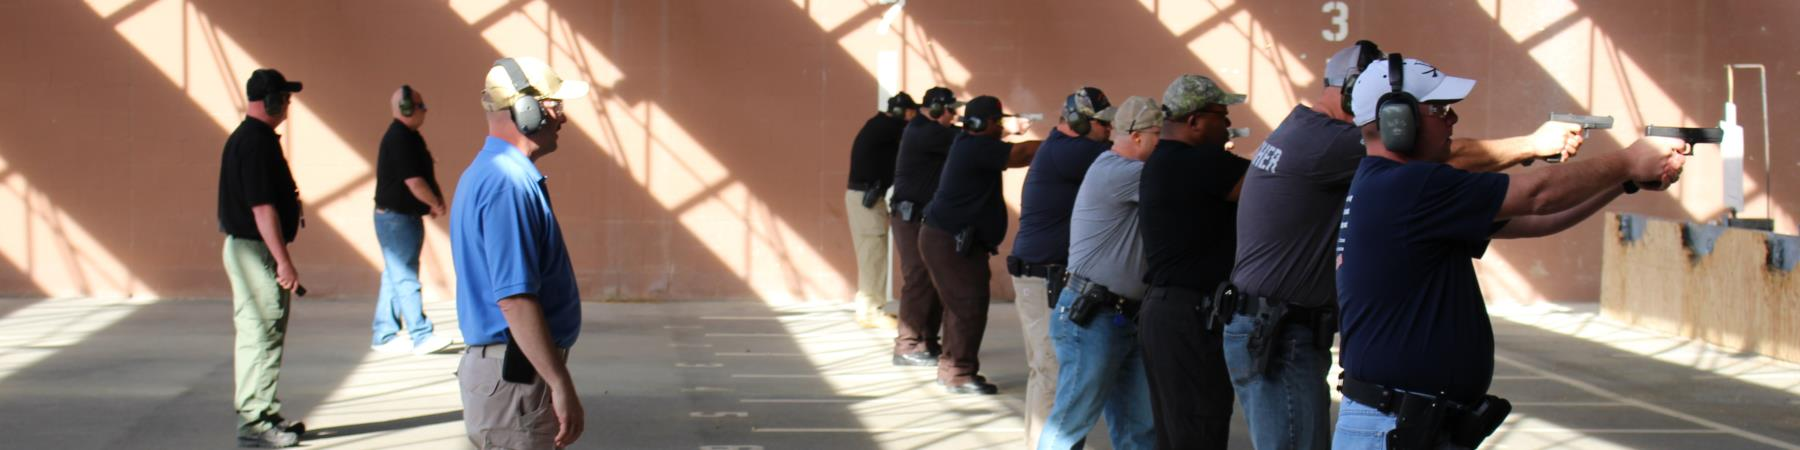 Conference Pistol Competition